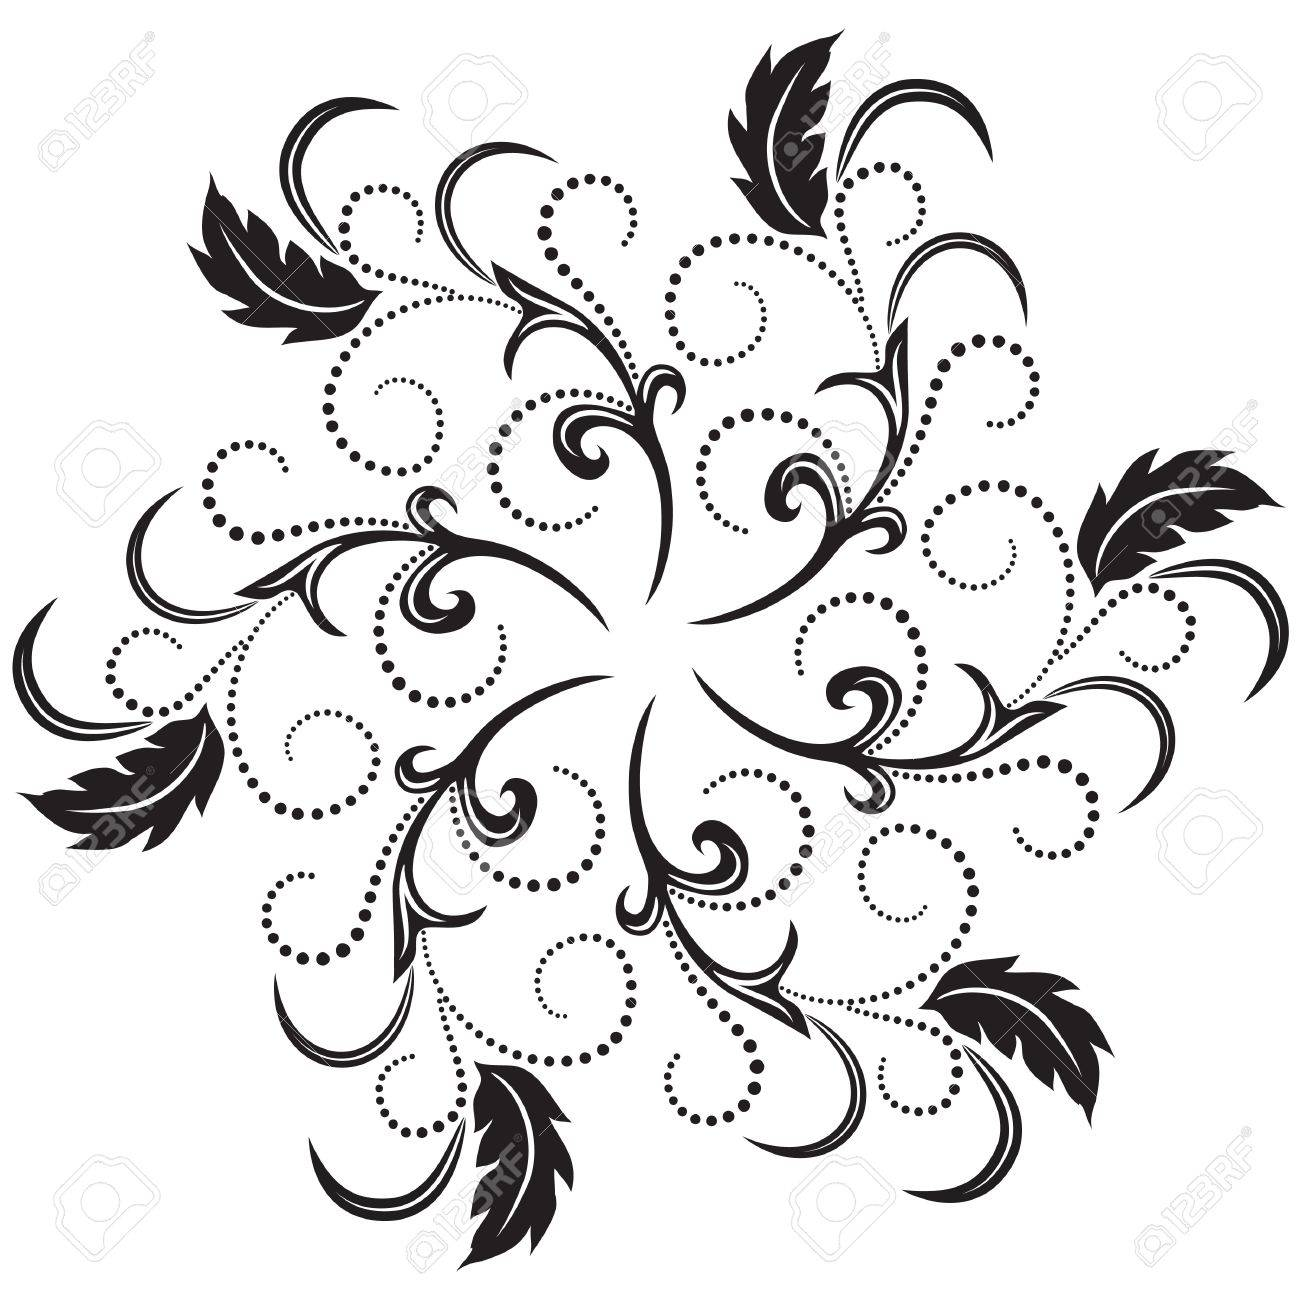 Round frame with decorative branch vector illustration stock - Decorative Round Frame With Flower Ornament Stock Vector 12469546